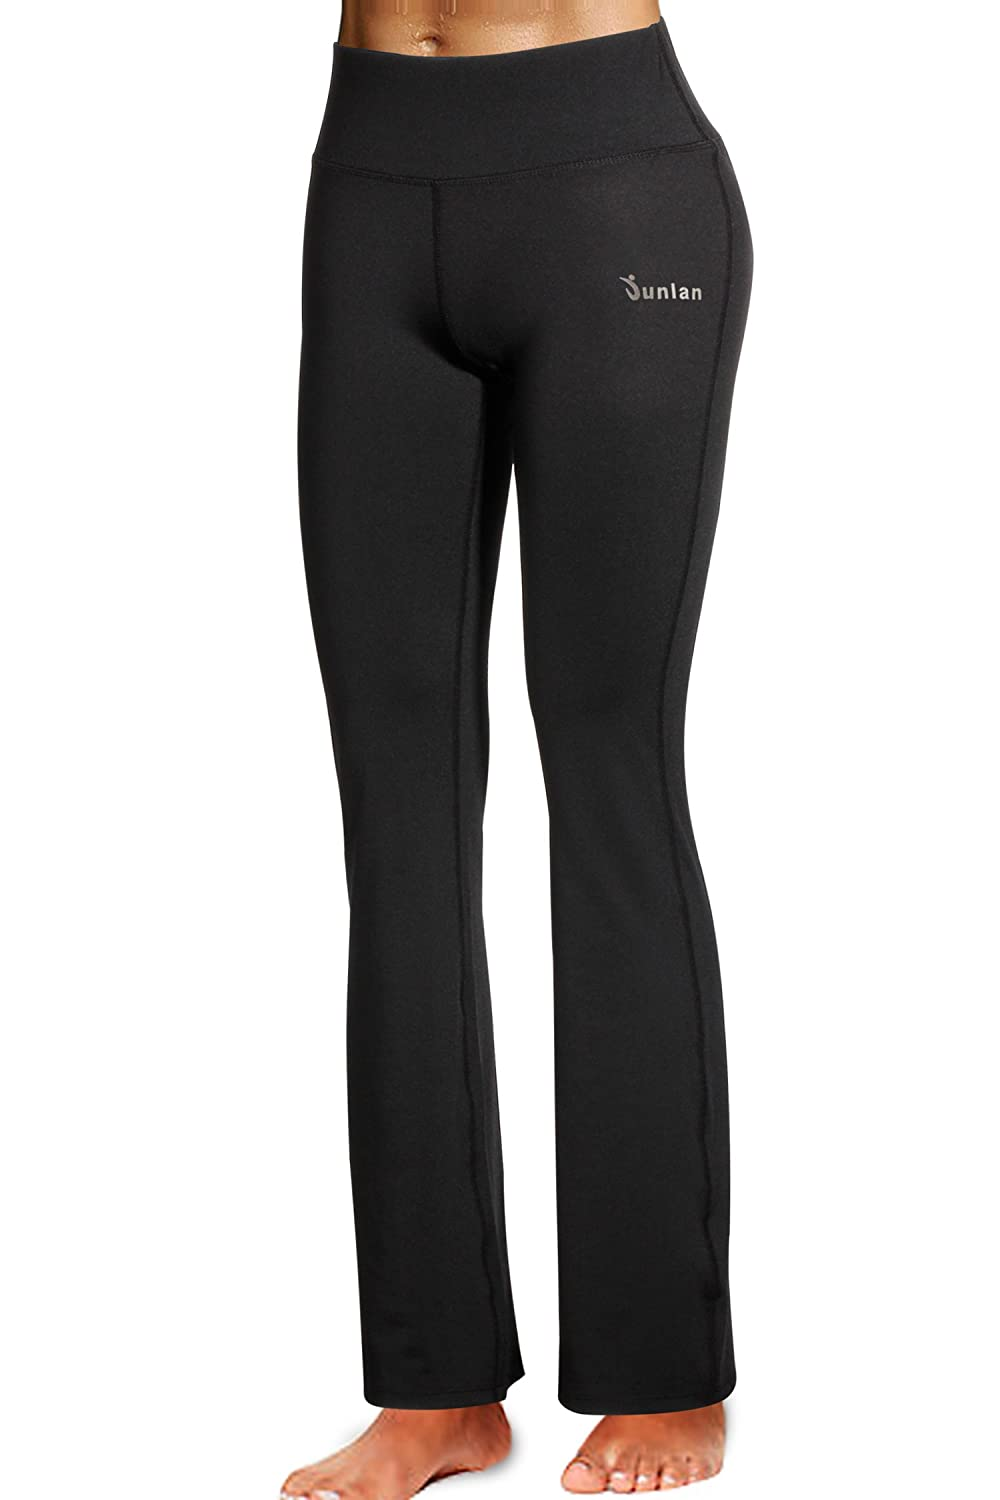 079b8435f2019 If any question about this slimming cincher legging,we hope you will  contact us ,we guarantee 100% money back. High quality workout pants ...